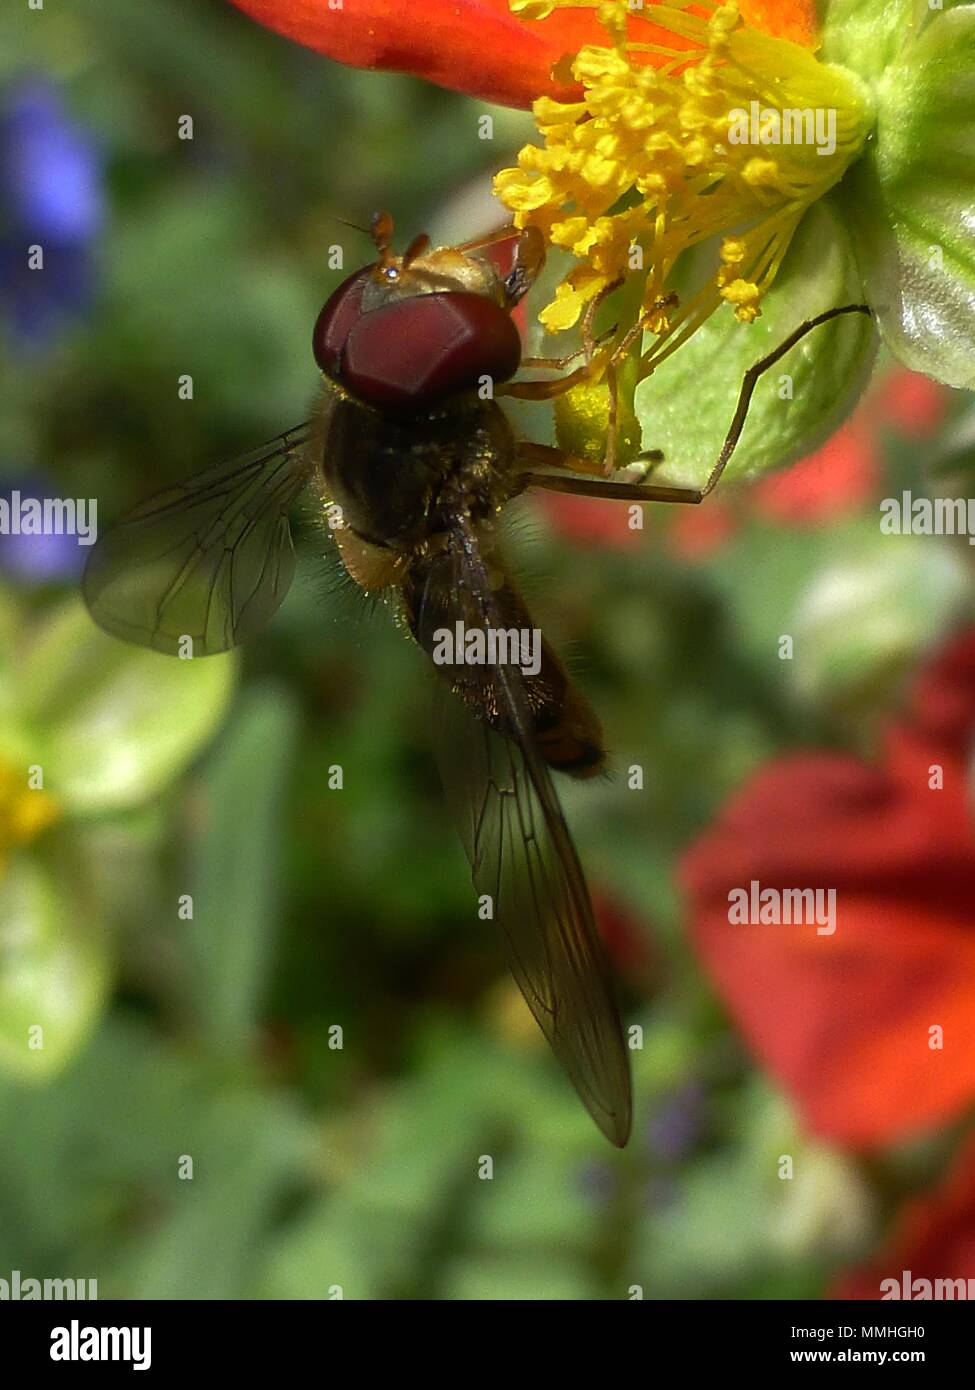 Hover fly on yellow stamen ed red flower stock photo 184783004 alamy hover fly on yellow stamen ed red flower mightylinksfo